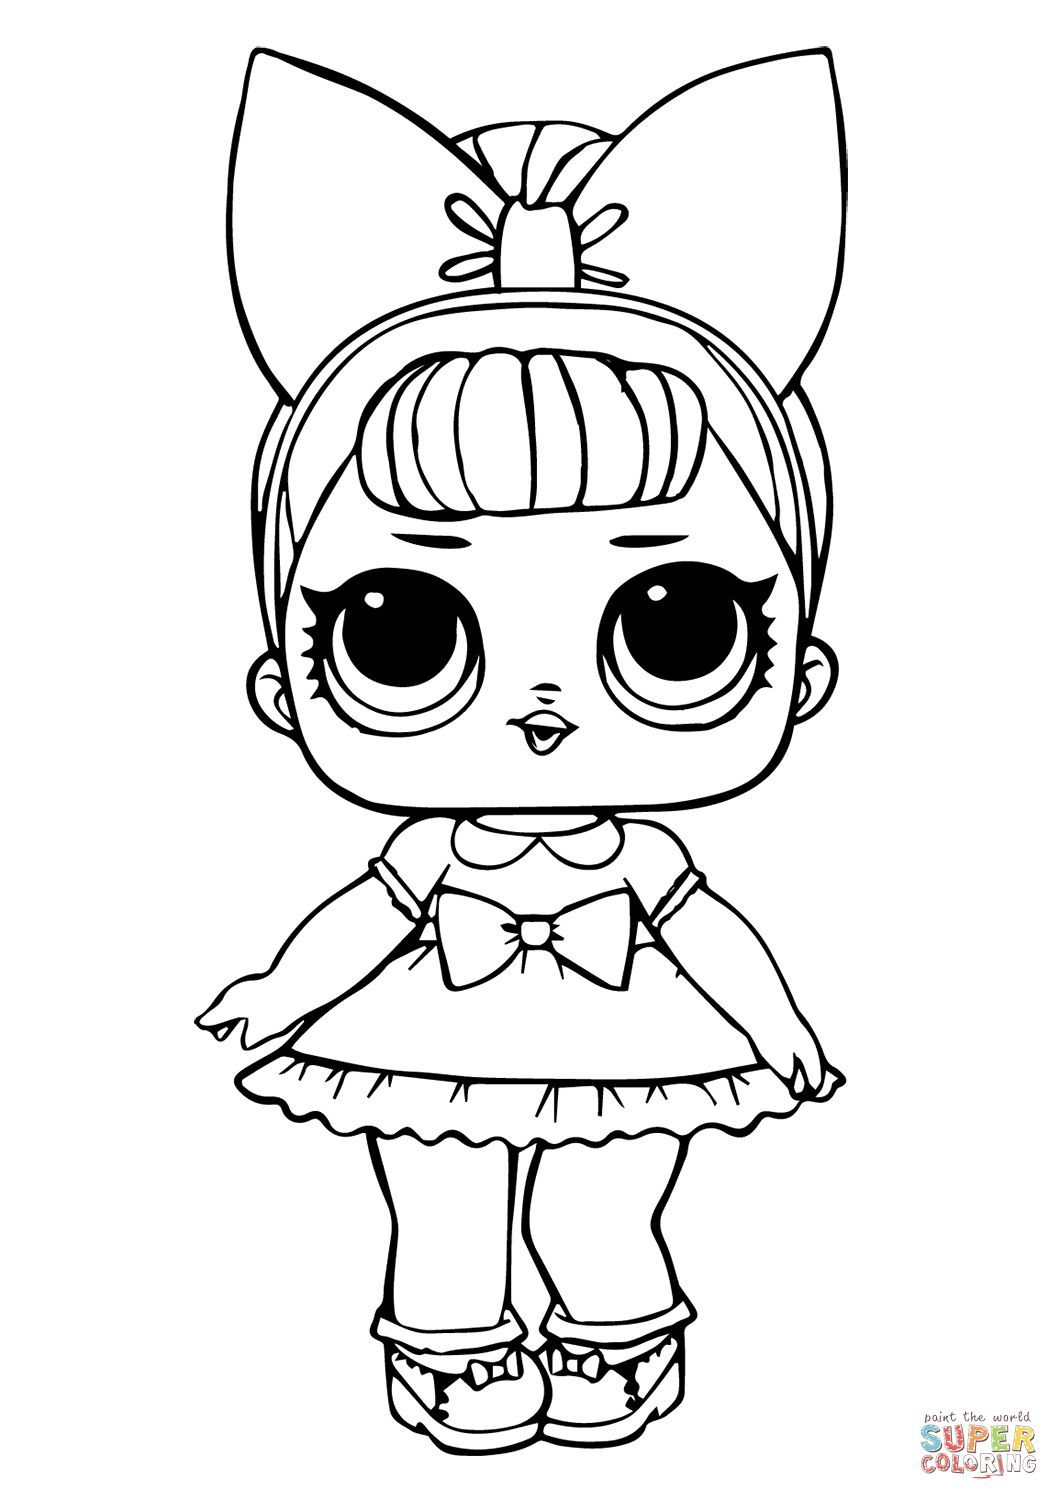 Lol Doll Face Coloring Pages Cute Coloring Pages Princess Coloring Pages Unicorn Coloring Pages